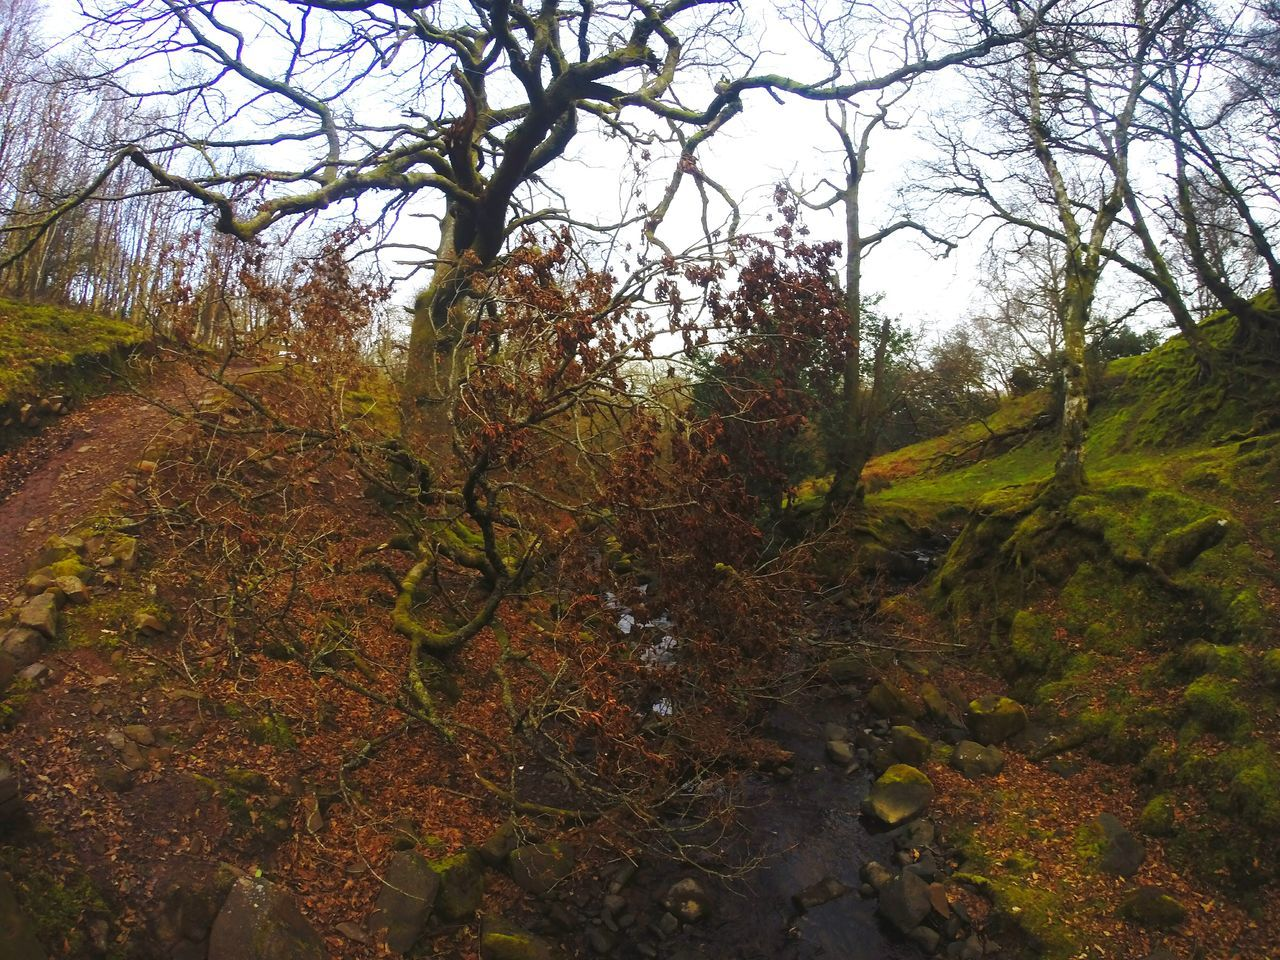 Tree Growth Beauty In Nature Nature No People Tranquility Tranquil Scene Backgrounds Forest Panoramic Photography Idyllic Pen Y Fan Walking Hiking Tranquility Rural Scene Agriculture Autumn Trekkingview Scenics Beauty In Nature Sunday Walk Outdoors Trekking Wales